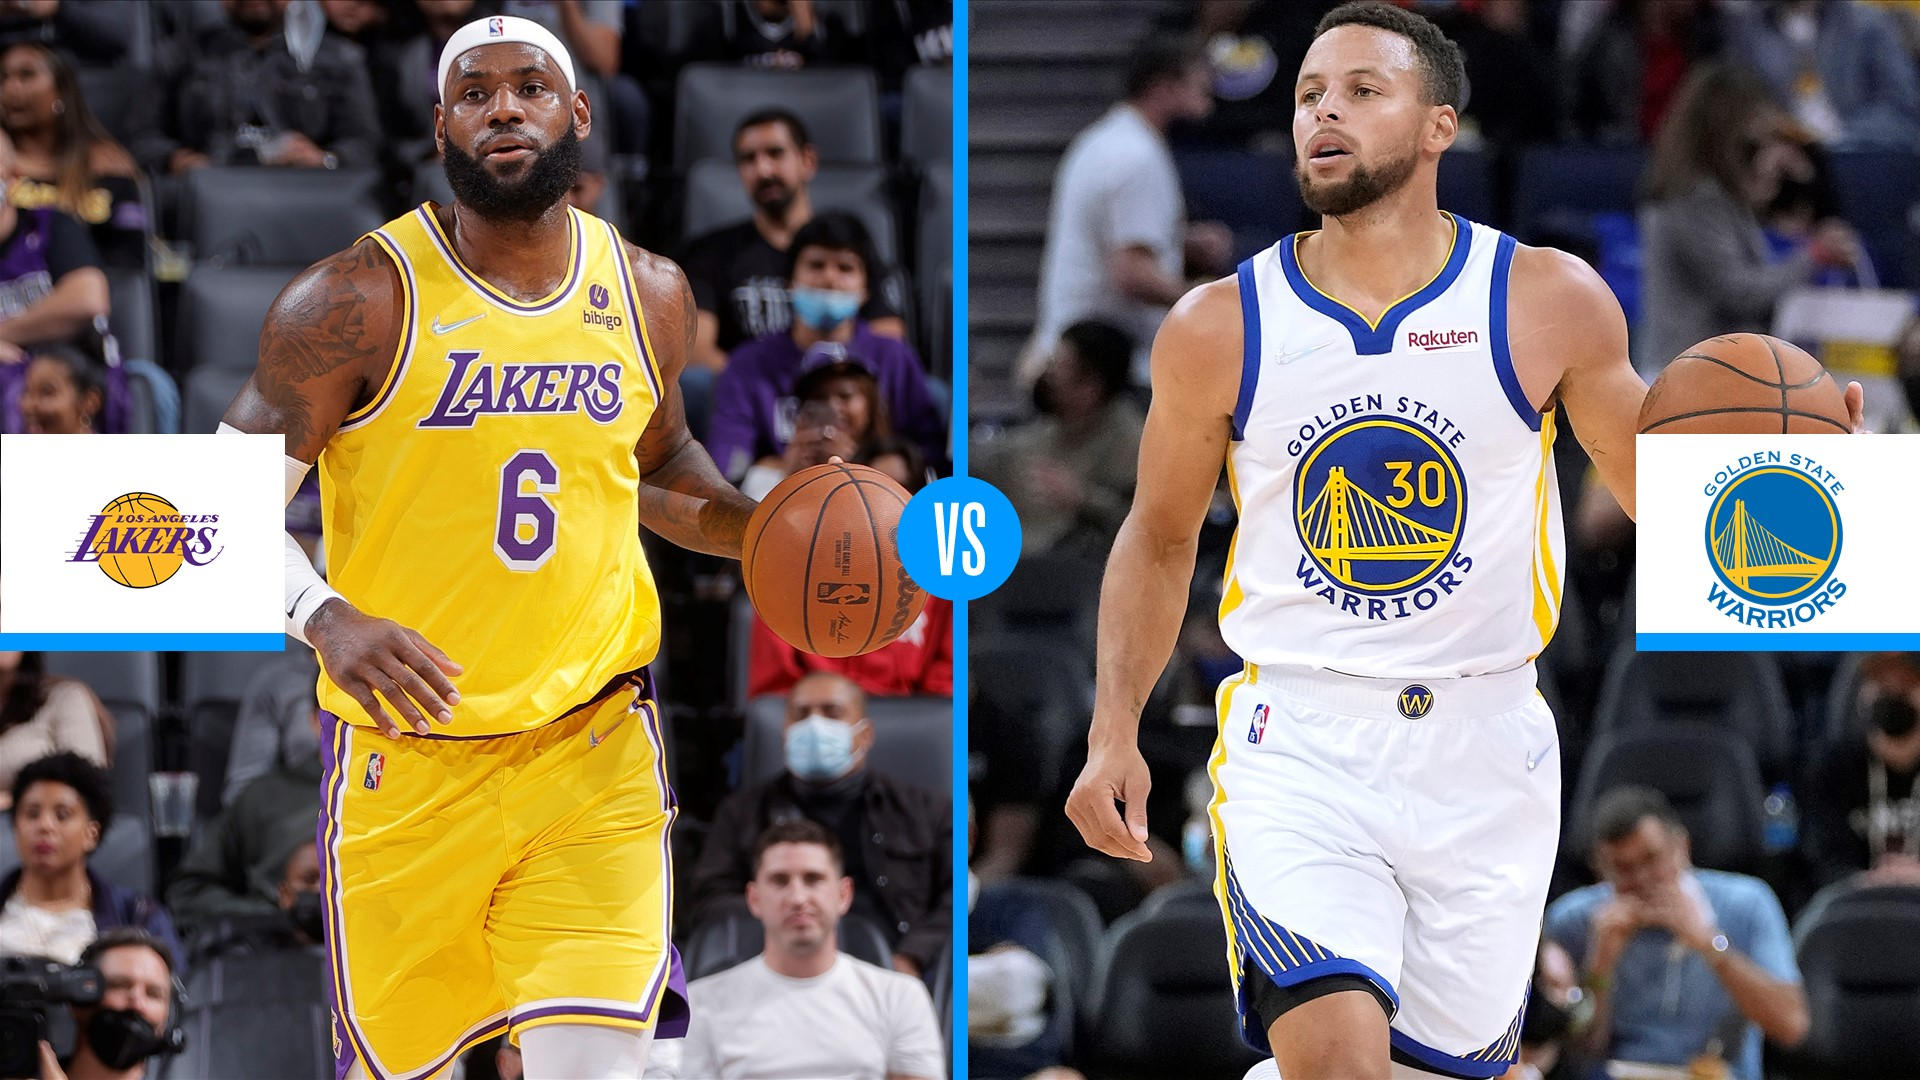 Lakers vs. Warriors live score, updates, highlights from 2021 NBA Opening Night game